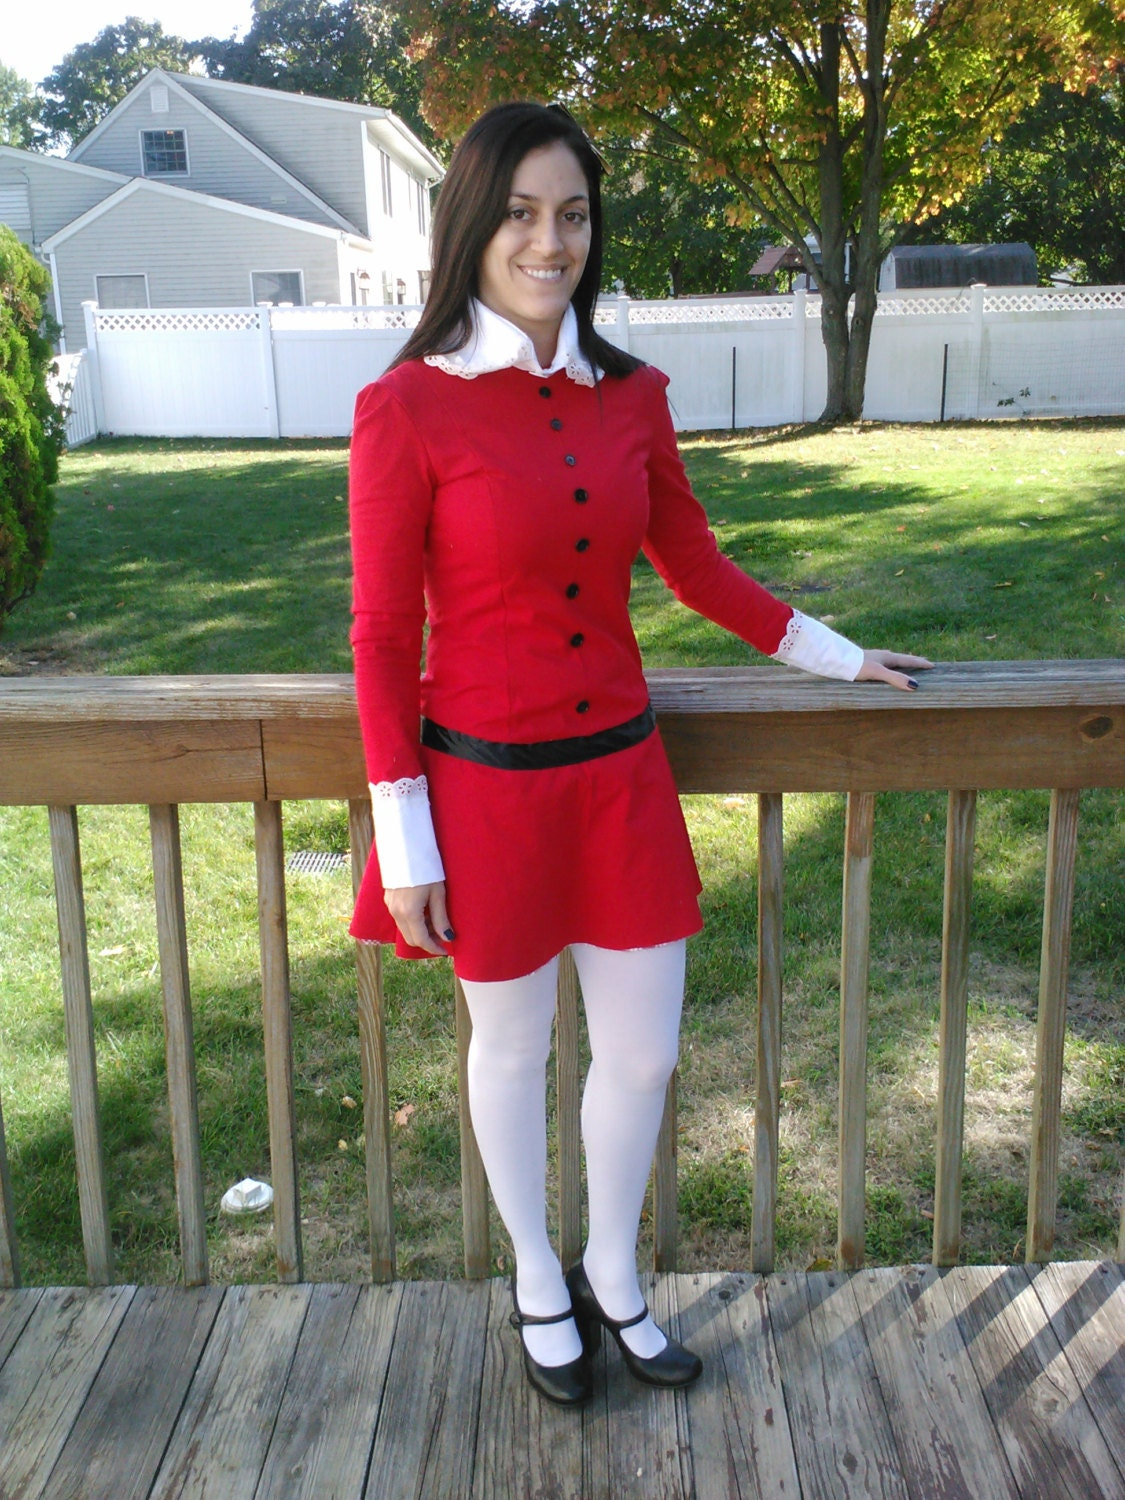 Veruca Salt Costume Willy Wonka and the Chocolate Factory